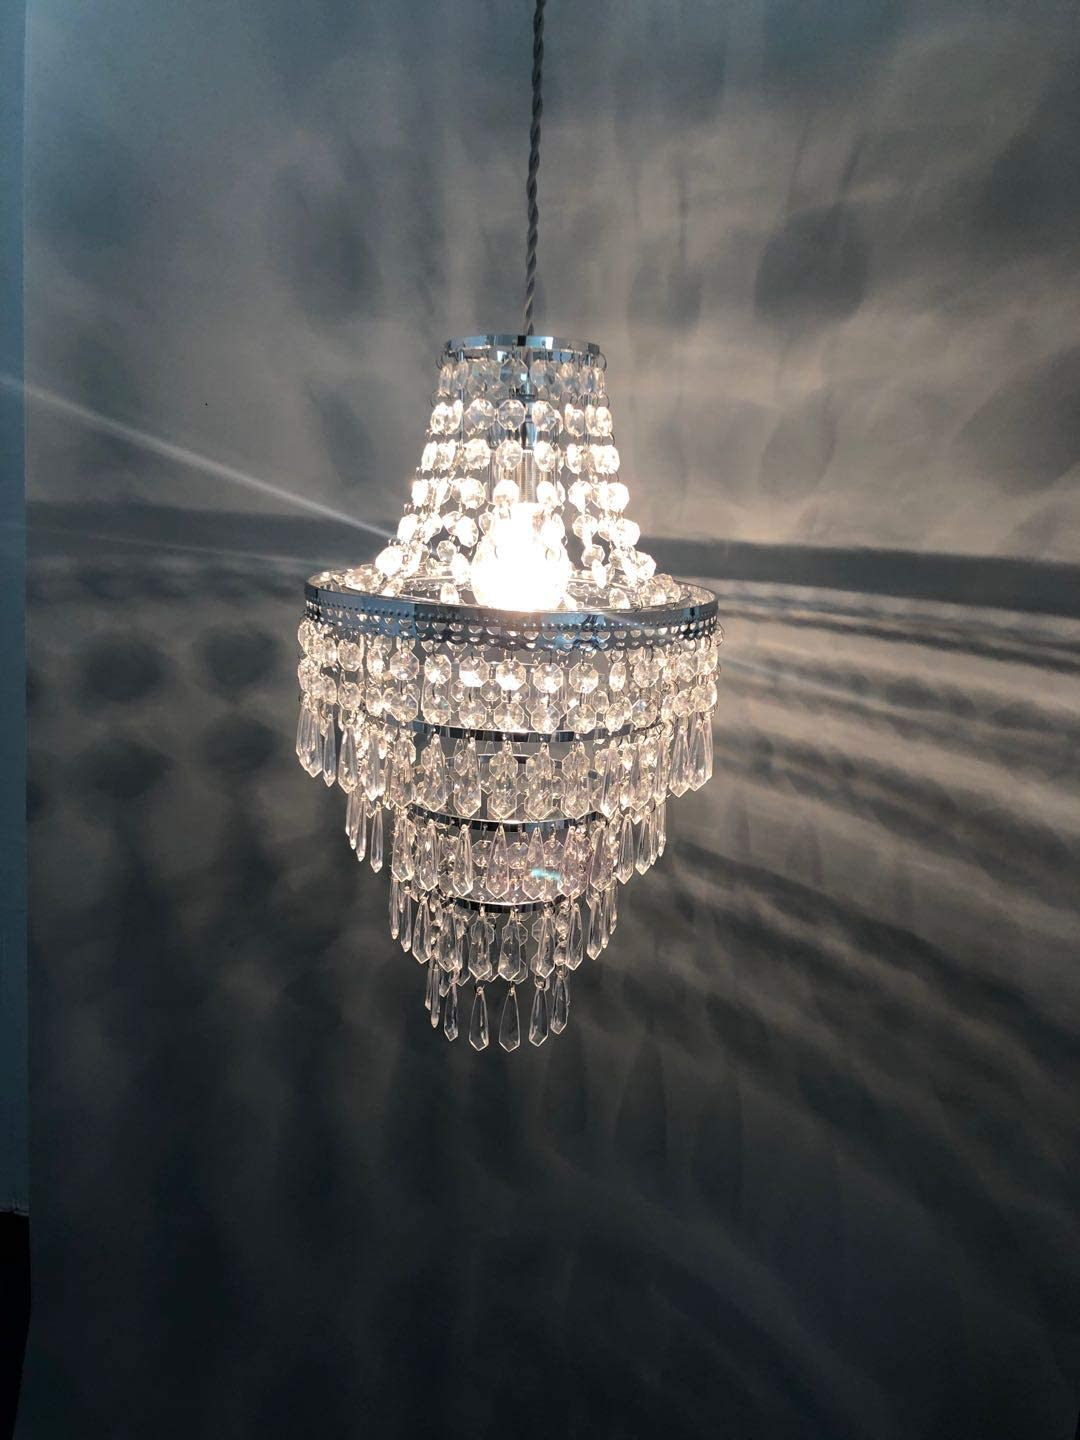 Lamp Shade with Polish Chrome Frame and Clear Beads-LH03-Clear JING Modern 4 Tier Chrome Beads Lamp Shade Ceiling Chandelier Lampshade with Acrylic Jewel Droplets